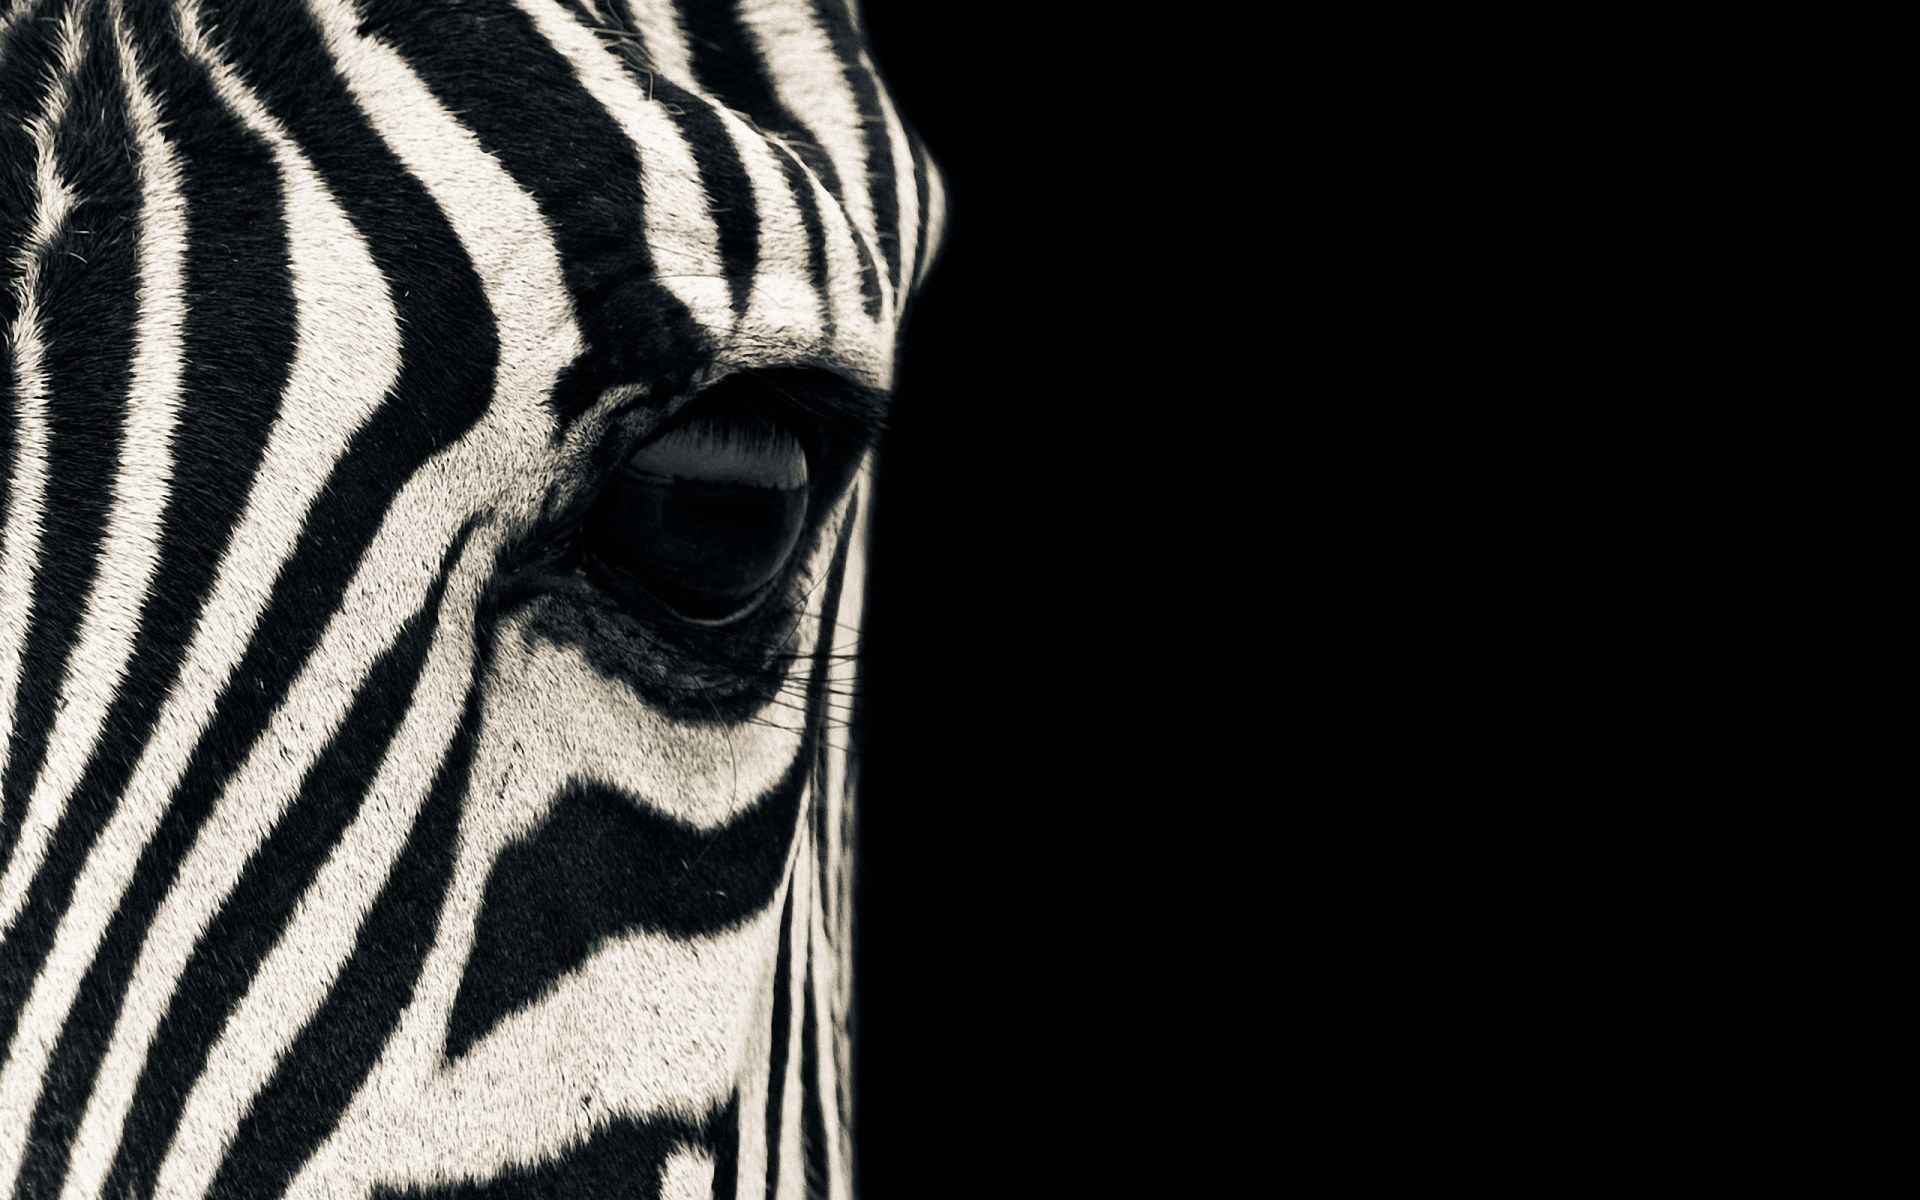 Zebra Wallpaper 1920×1200 Free